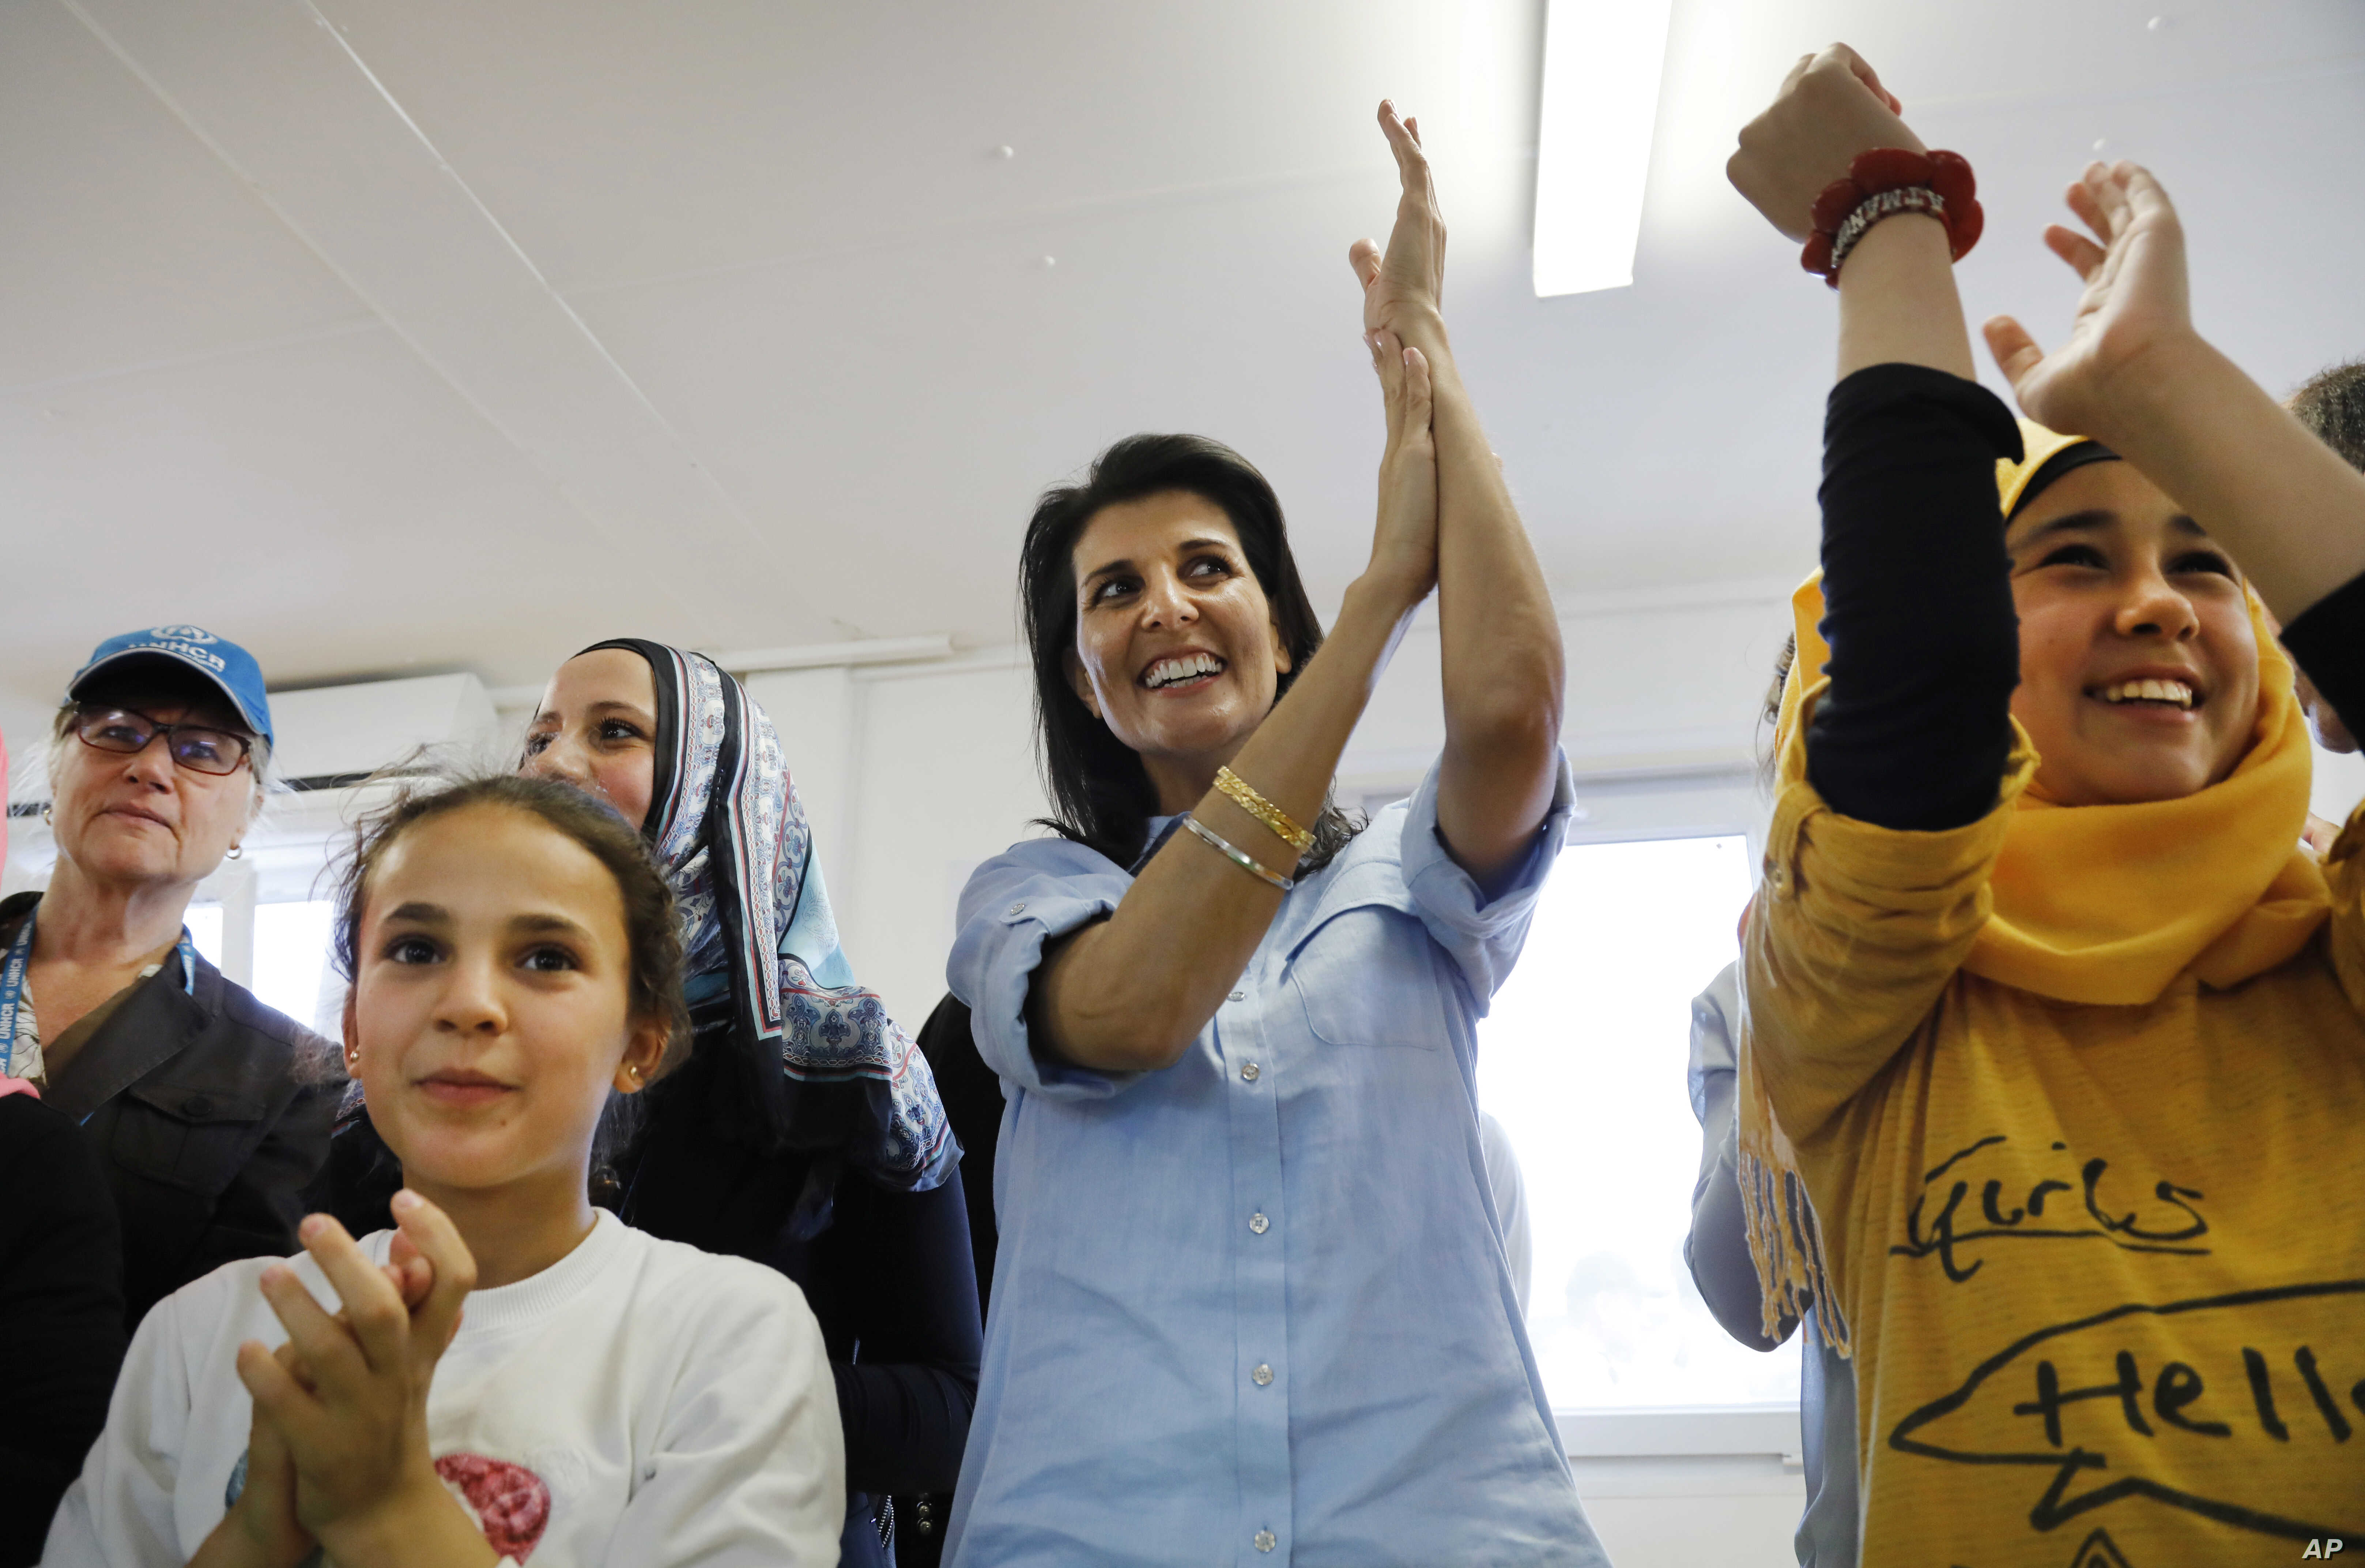 U.S. Ambassador to the U.N. Nikki Haley, center, sings and dances with Syrian refugee children during a visit at the Boynuyogun refugee camp near Hatay, southern Turkey, May 24, 2017.